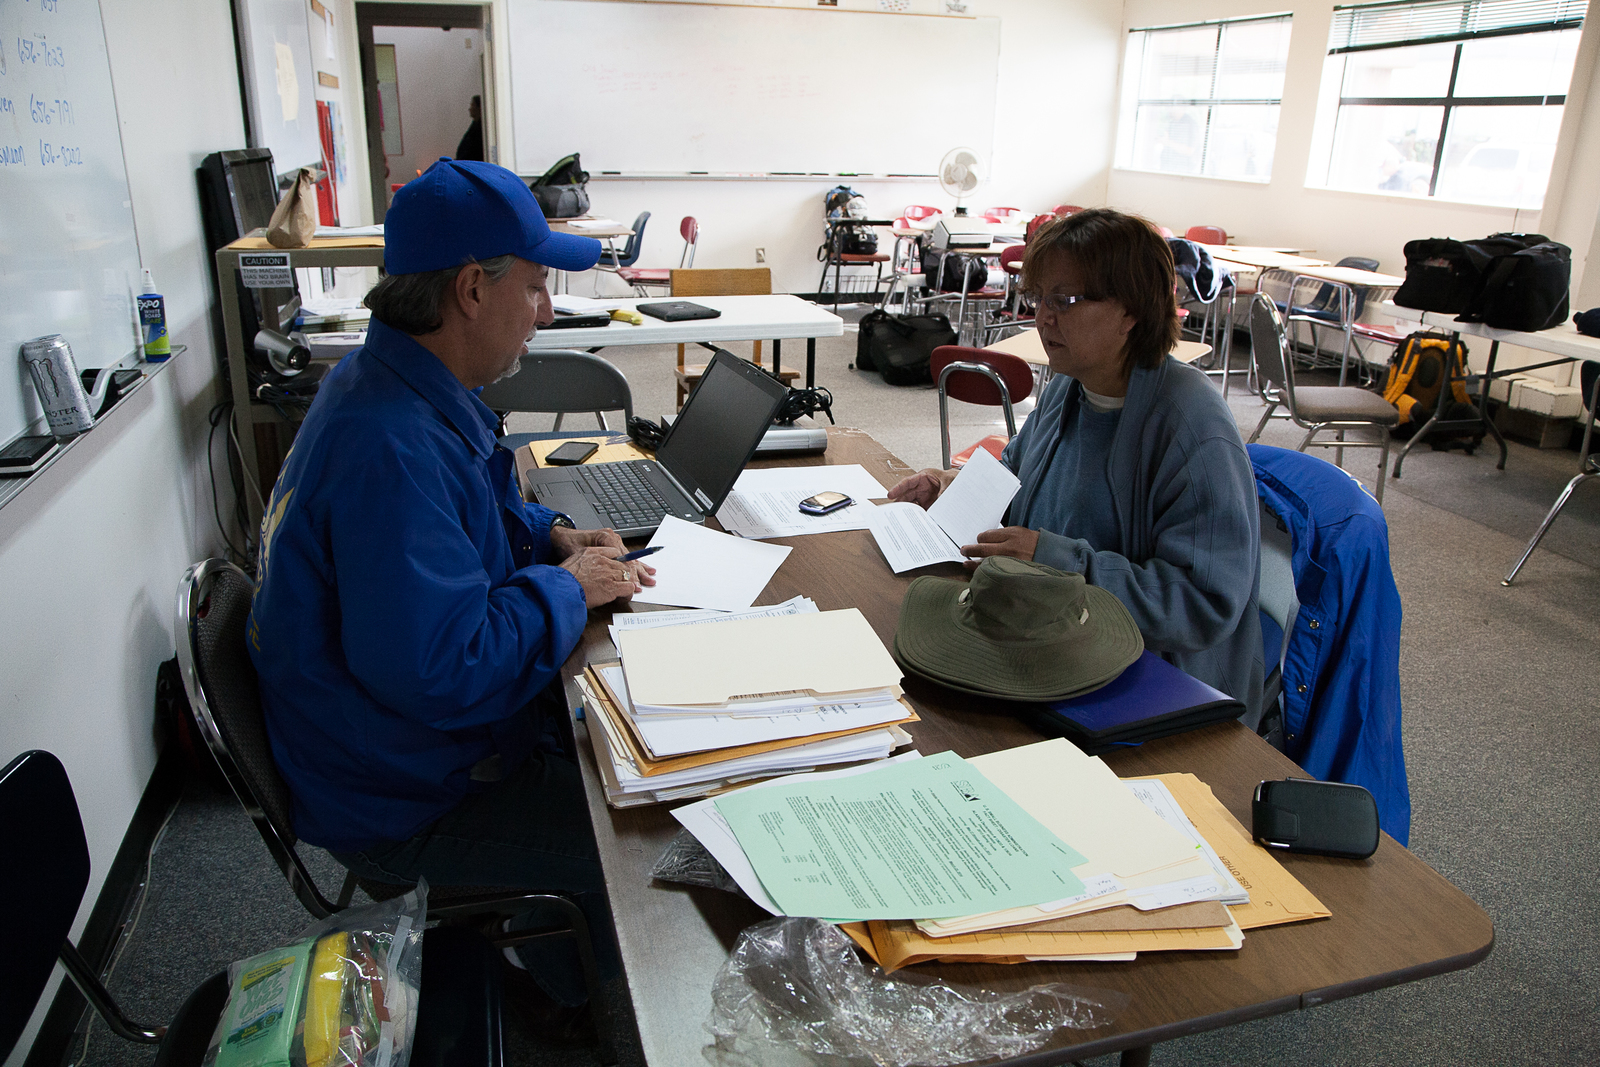 Galena, Alaska, July 1, 2013 -- Dave Walker, a Small Business Administration (SBA) specialist, assists business owner Marlene Marshal with technical details necessary for loan applications. The SBA provides survivors with business loans to help with the recovery process. Photo by Ed Edahl/FEMA